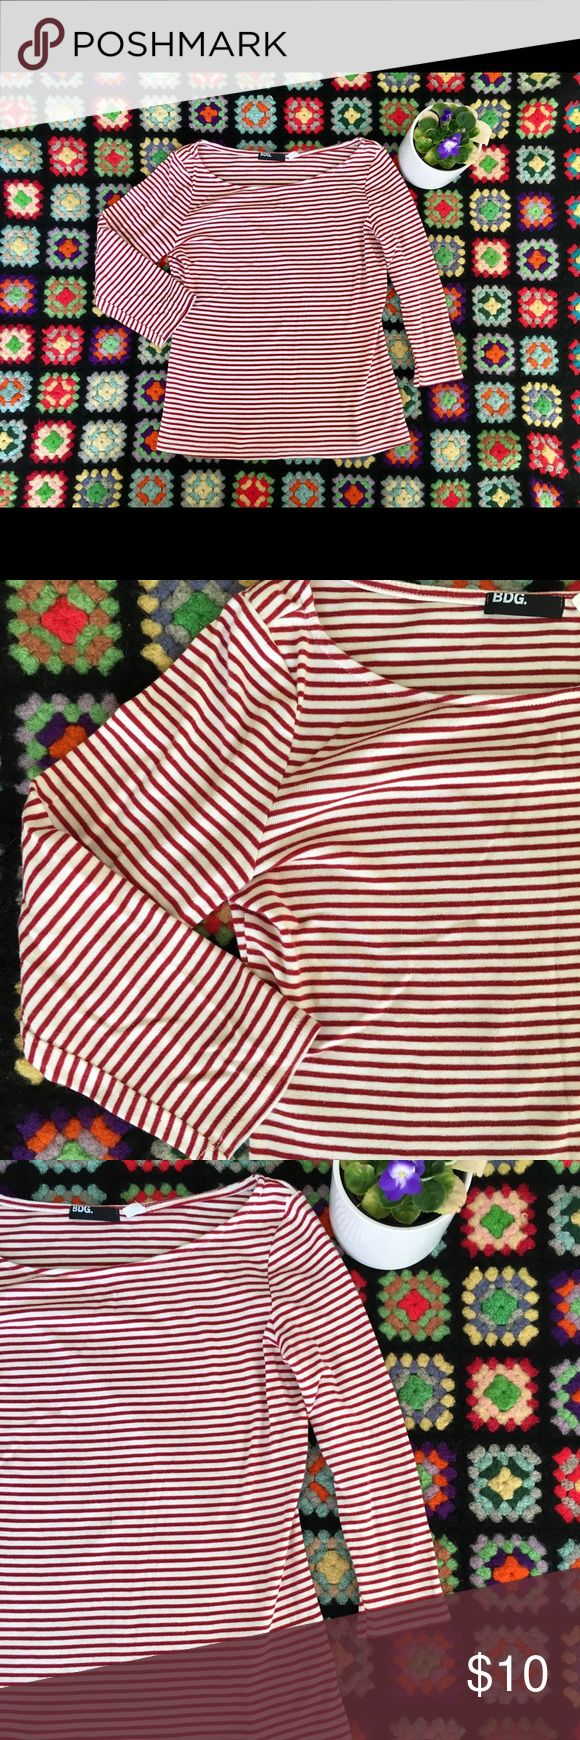 Urban Outfitters striped top Bdg urban Outfitters  Size medium Made in USA Red and white striped blouse. Simple and chic. Very feminine chic looking. Great condition. Three quarter sleeves. Urban Outfitters Tops Blouses